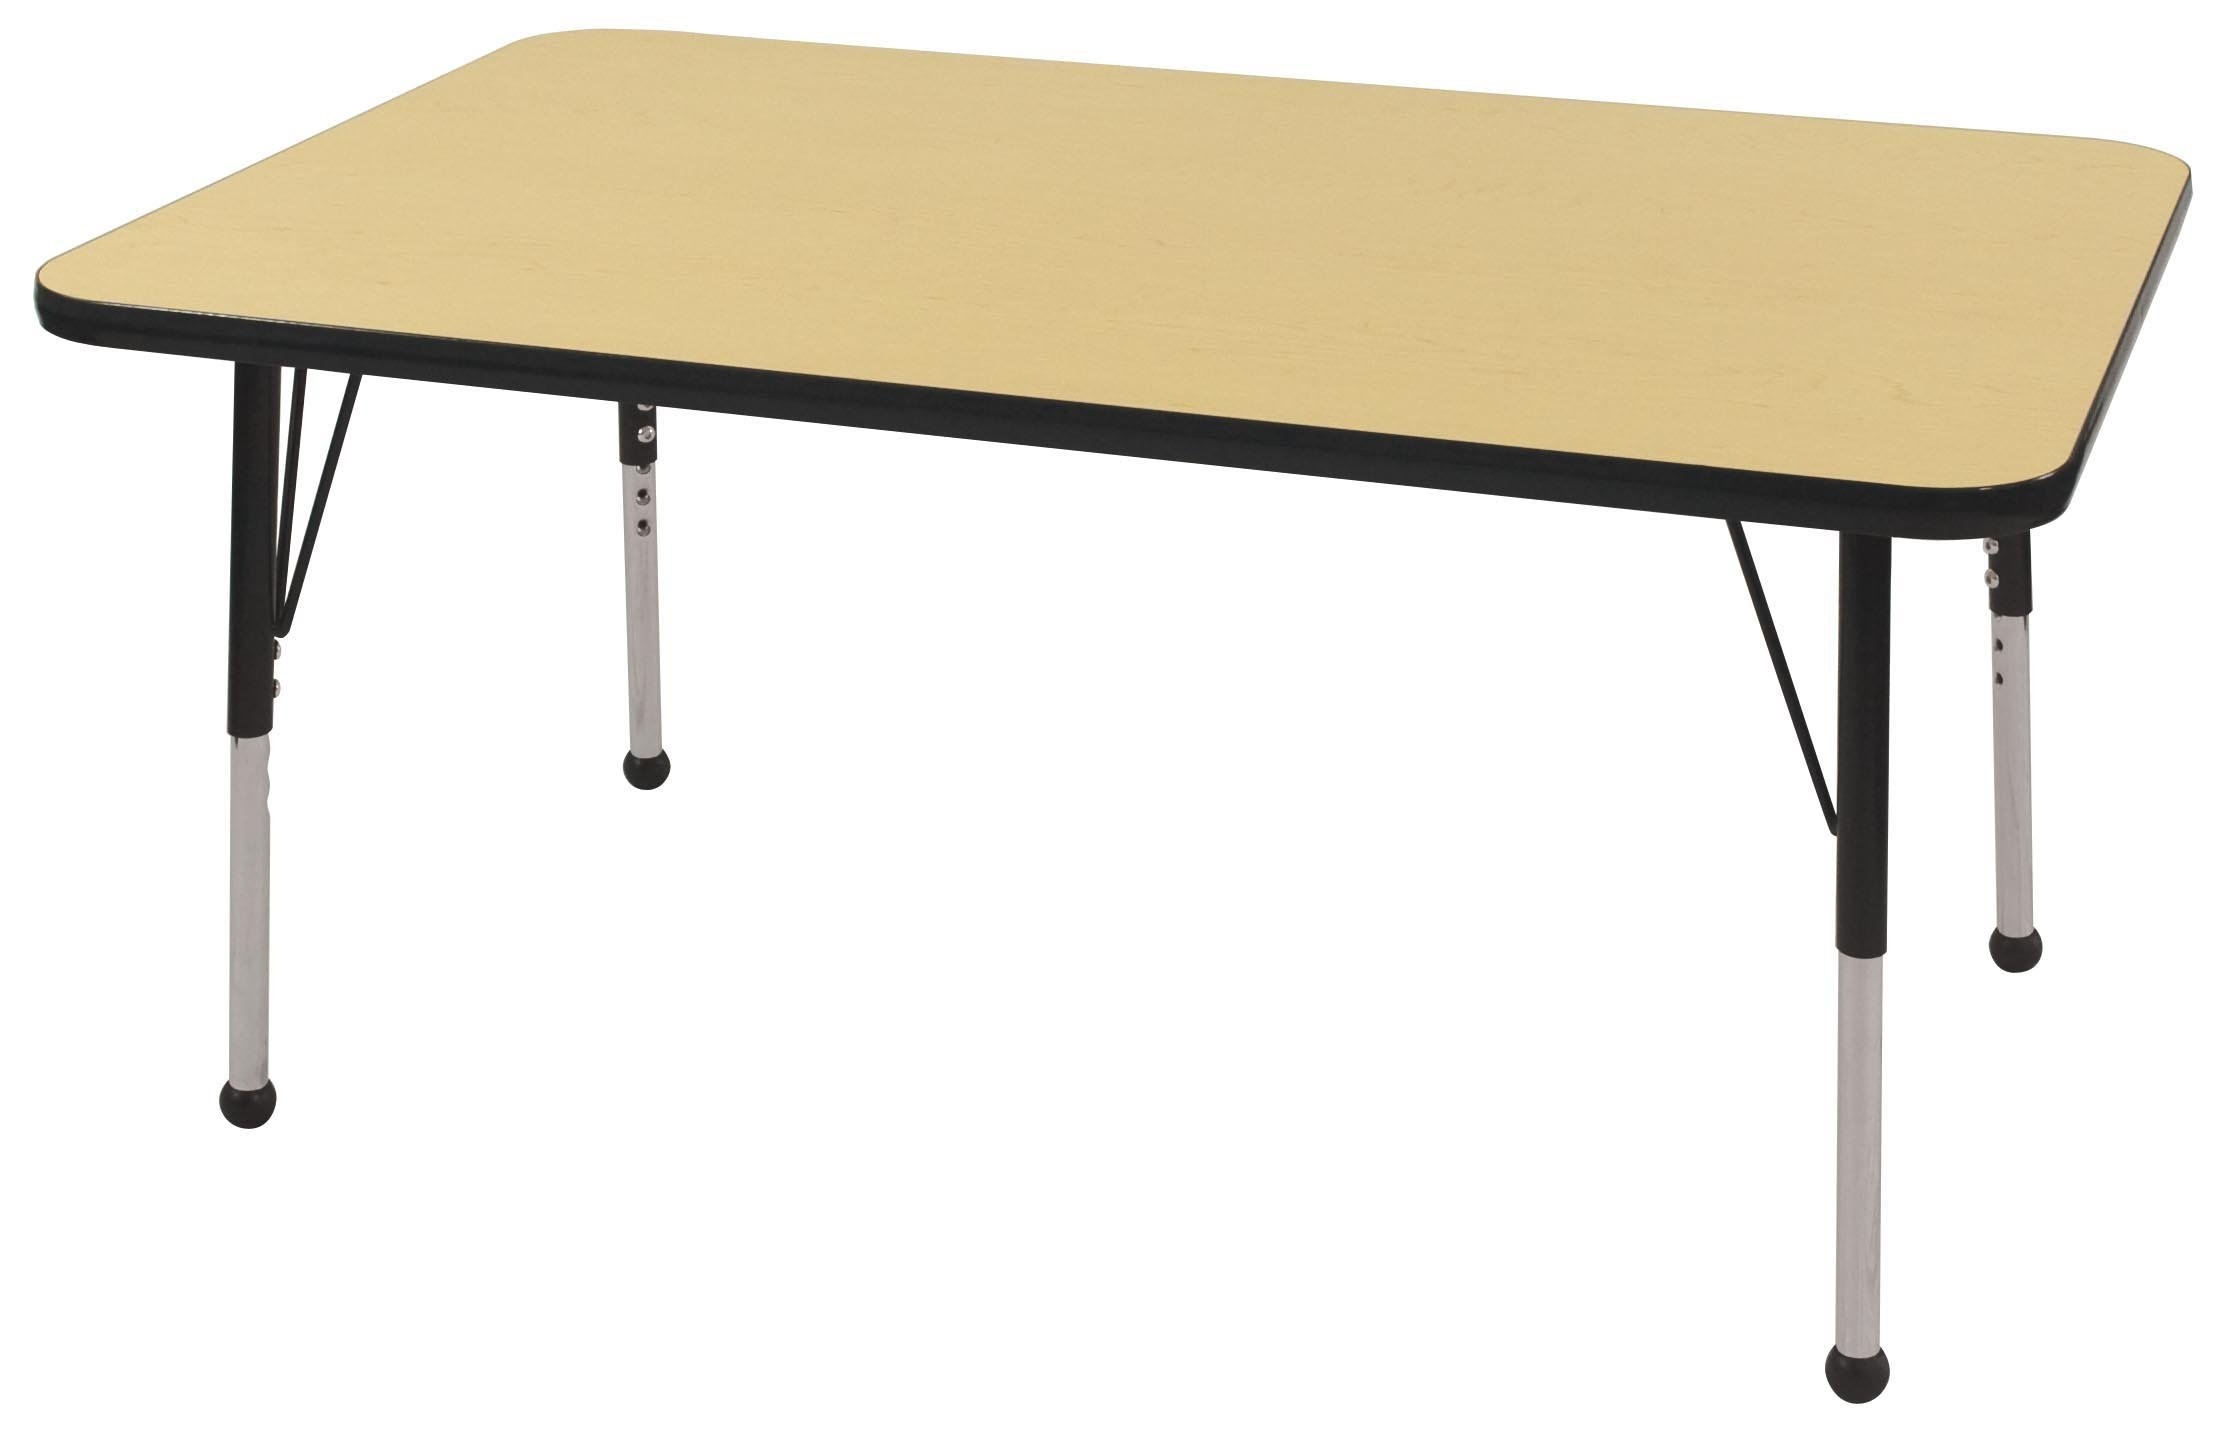 ECR4Kids Mesa T-Mold 30'' x 48'' Rectangular School Activity Table, Standard Legs w/ Ball Glides, Adjustable Height 19-30 inch (Maple/Black) by ECR4Kids